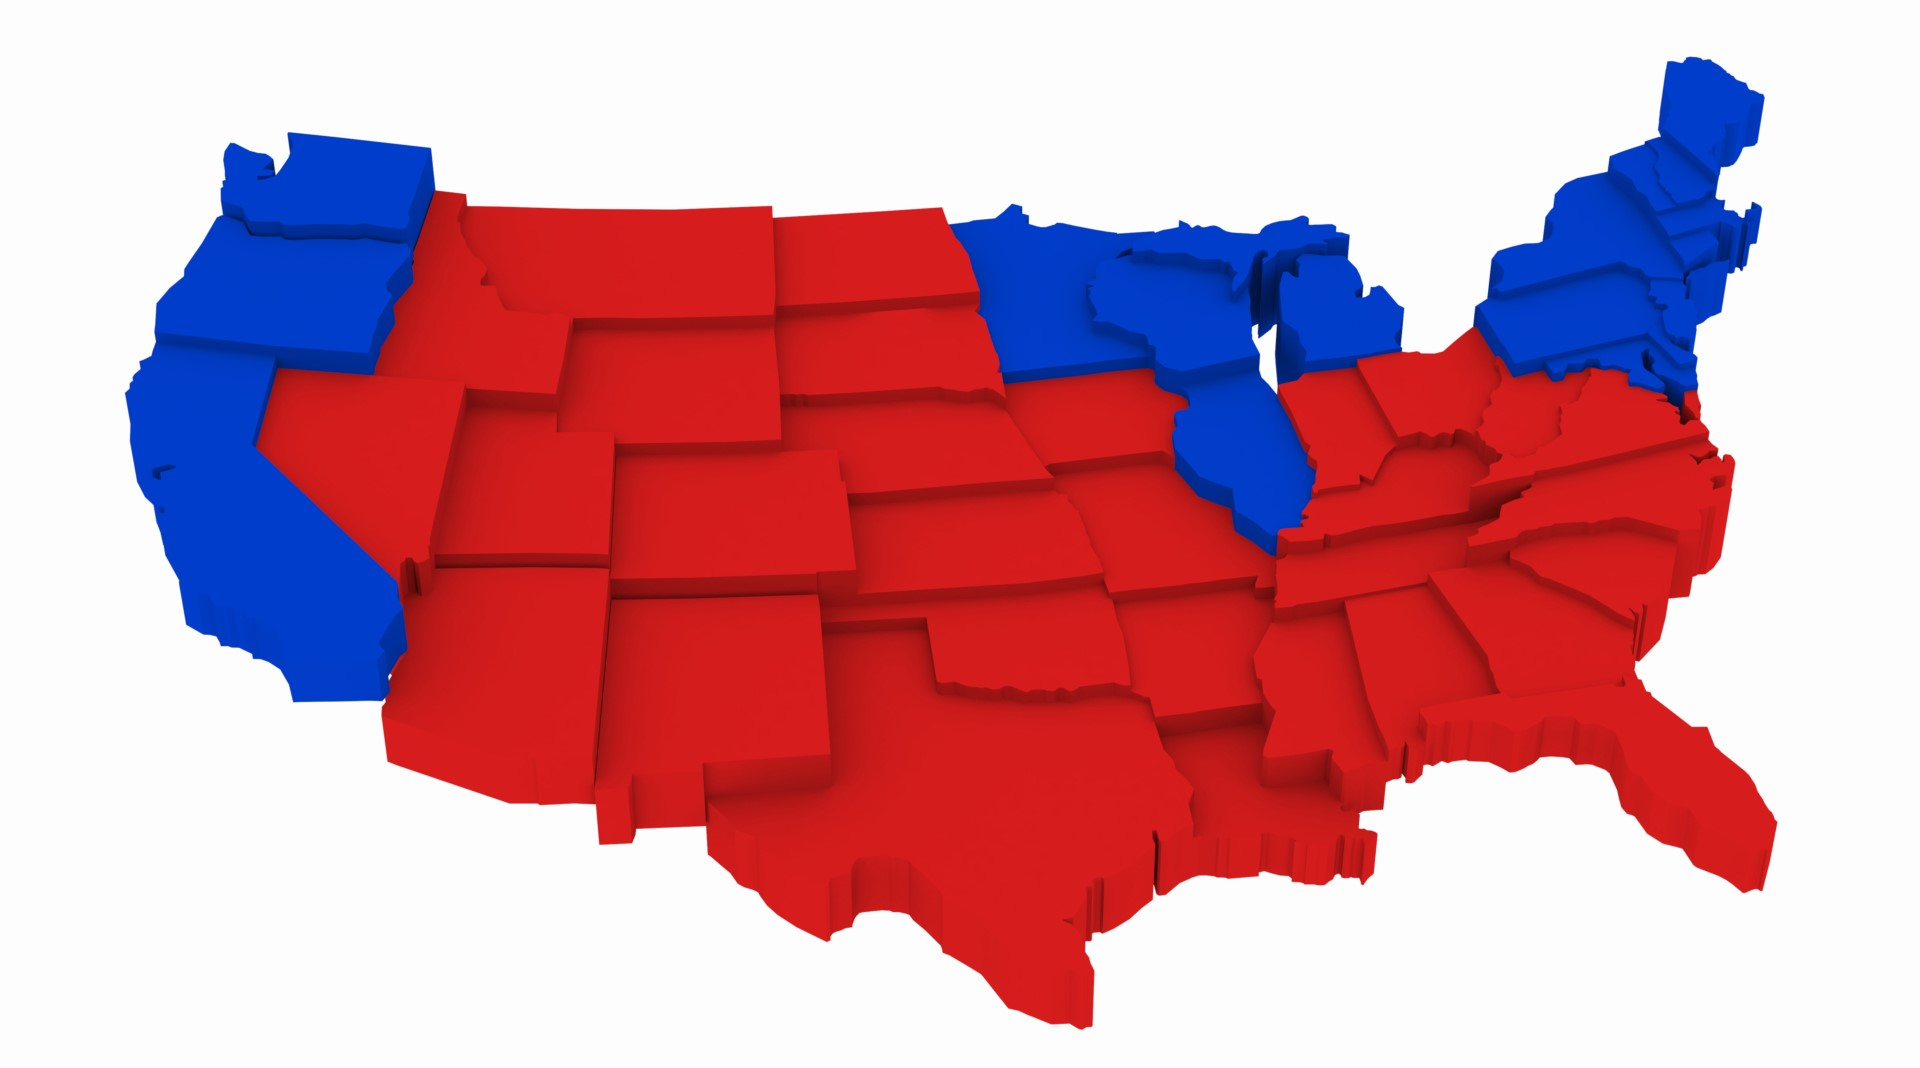 Electoral College safeguards federalism in political process